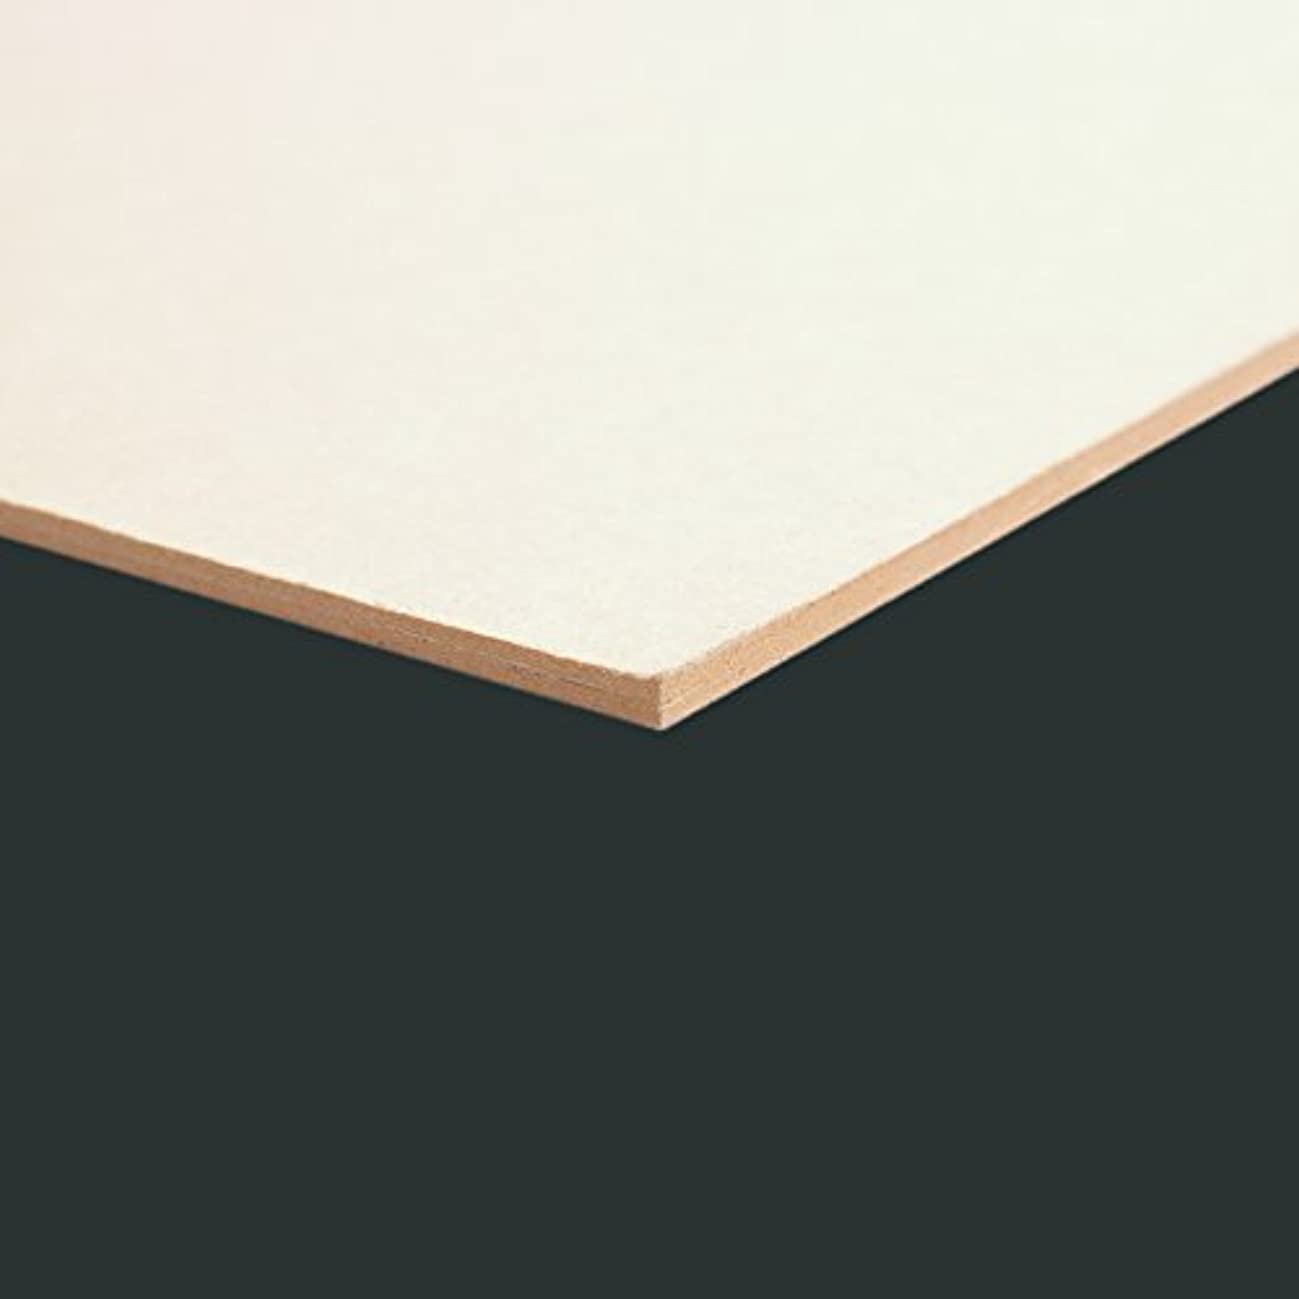 Clairefontaine 60 x 80 cm Recycled Grey Board, 3 mm Thick, 1920 g, 1 Sheet